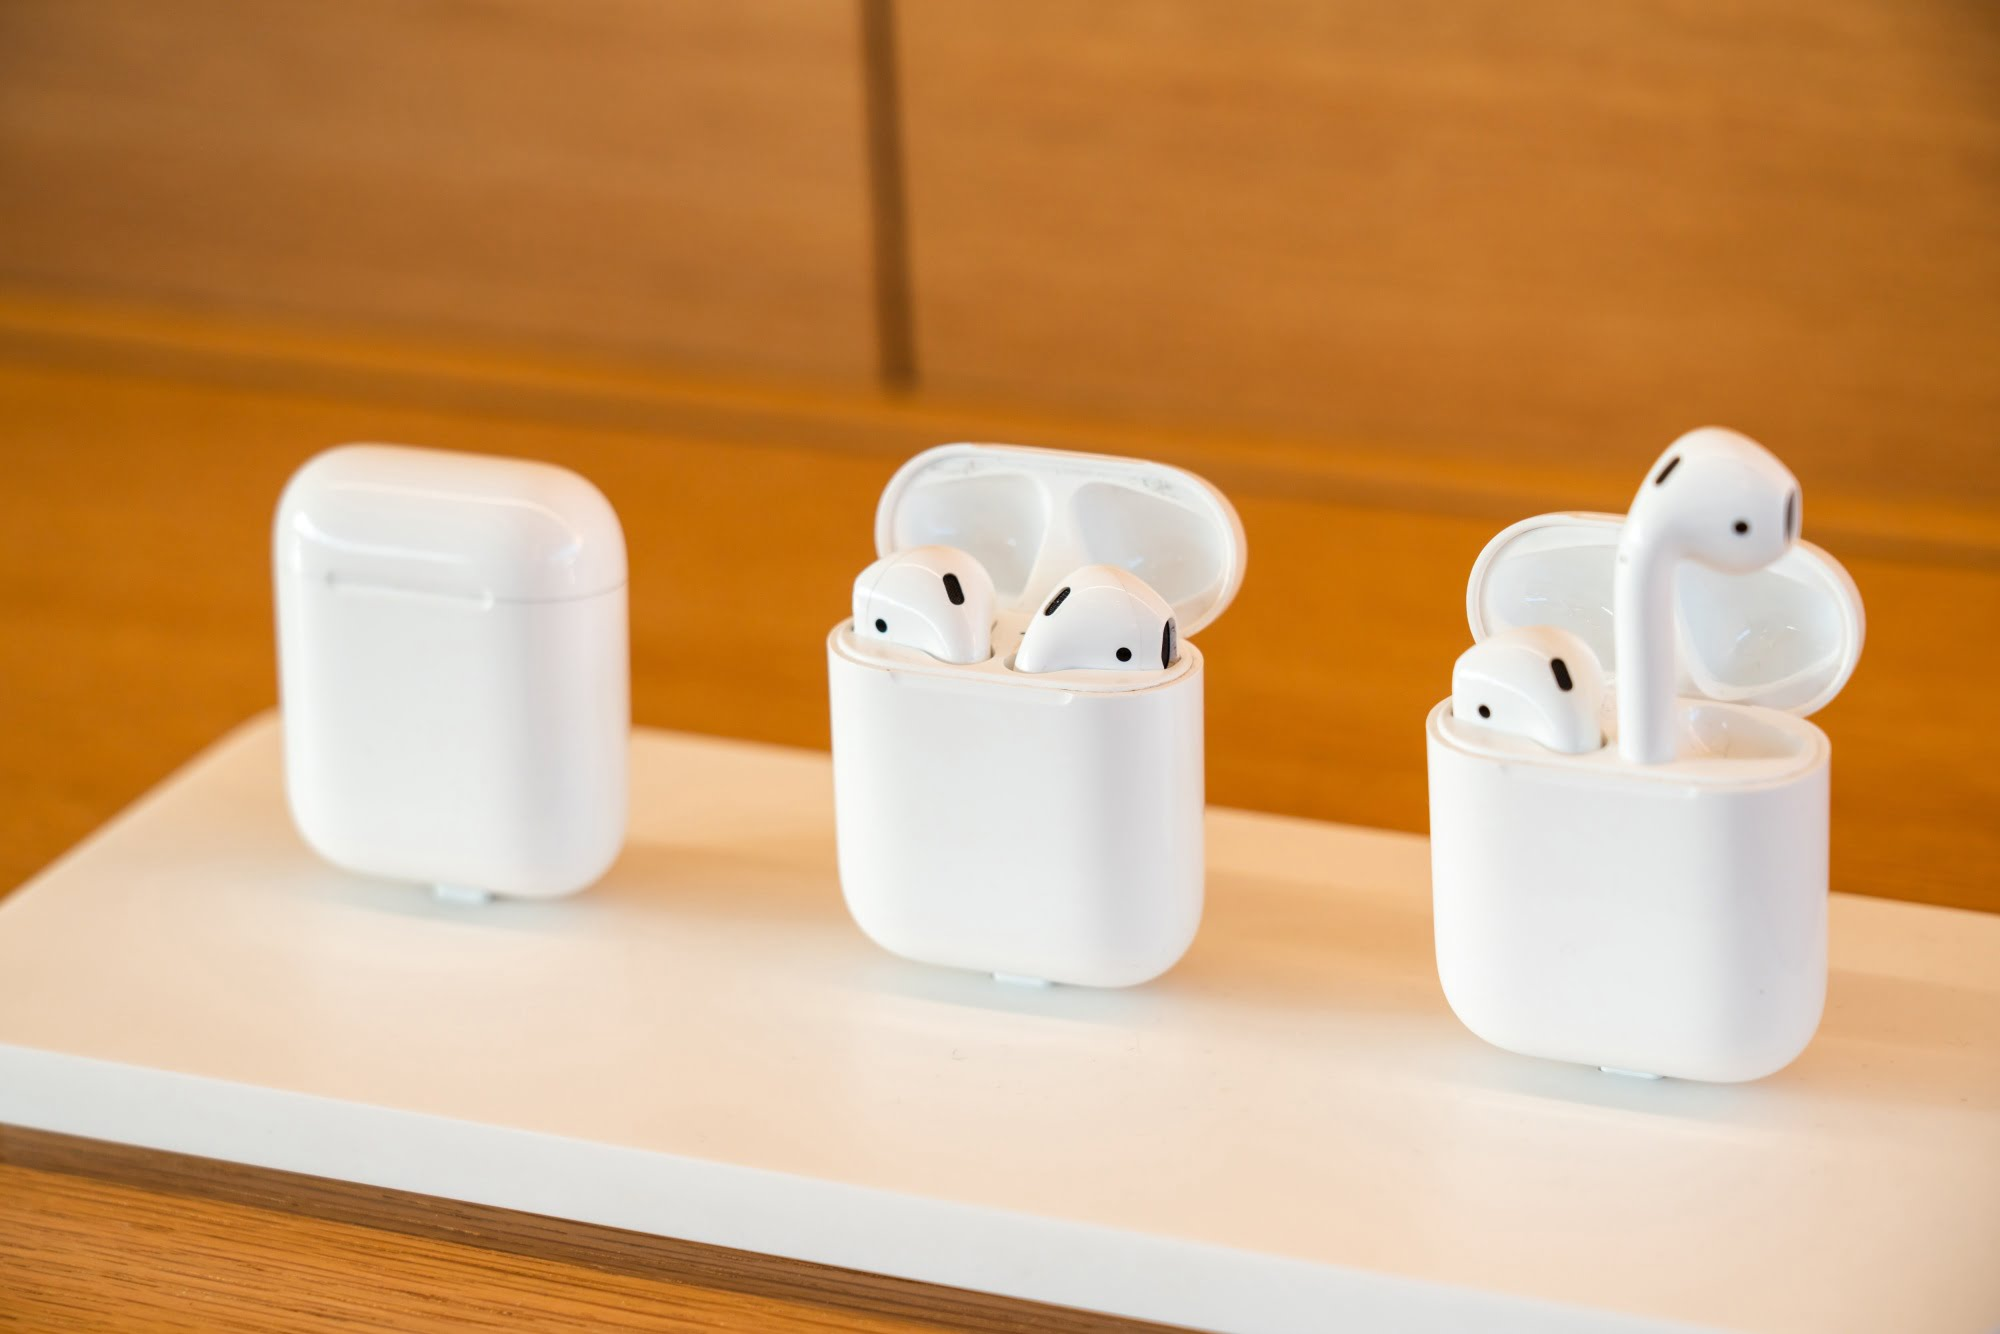 Apple prepares smaller AirPods at entry-level prices